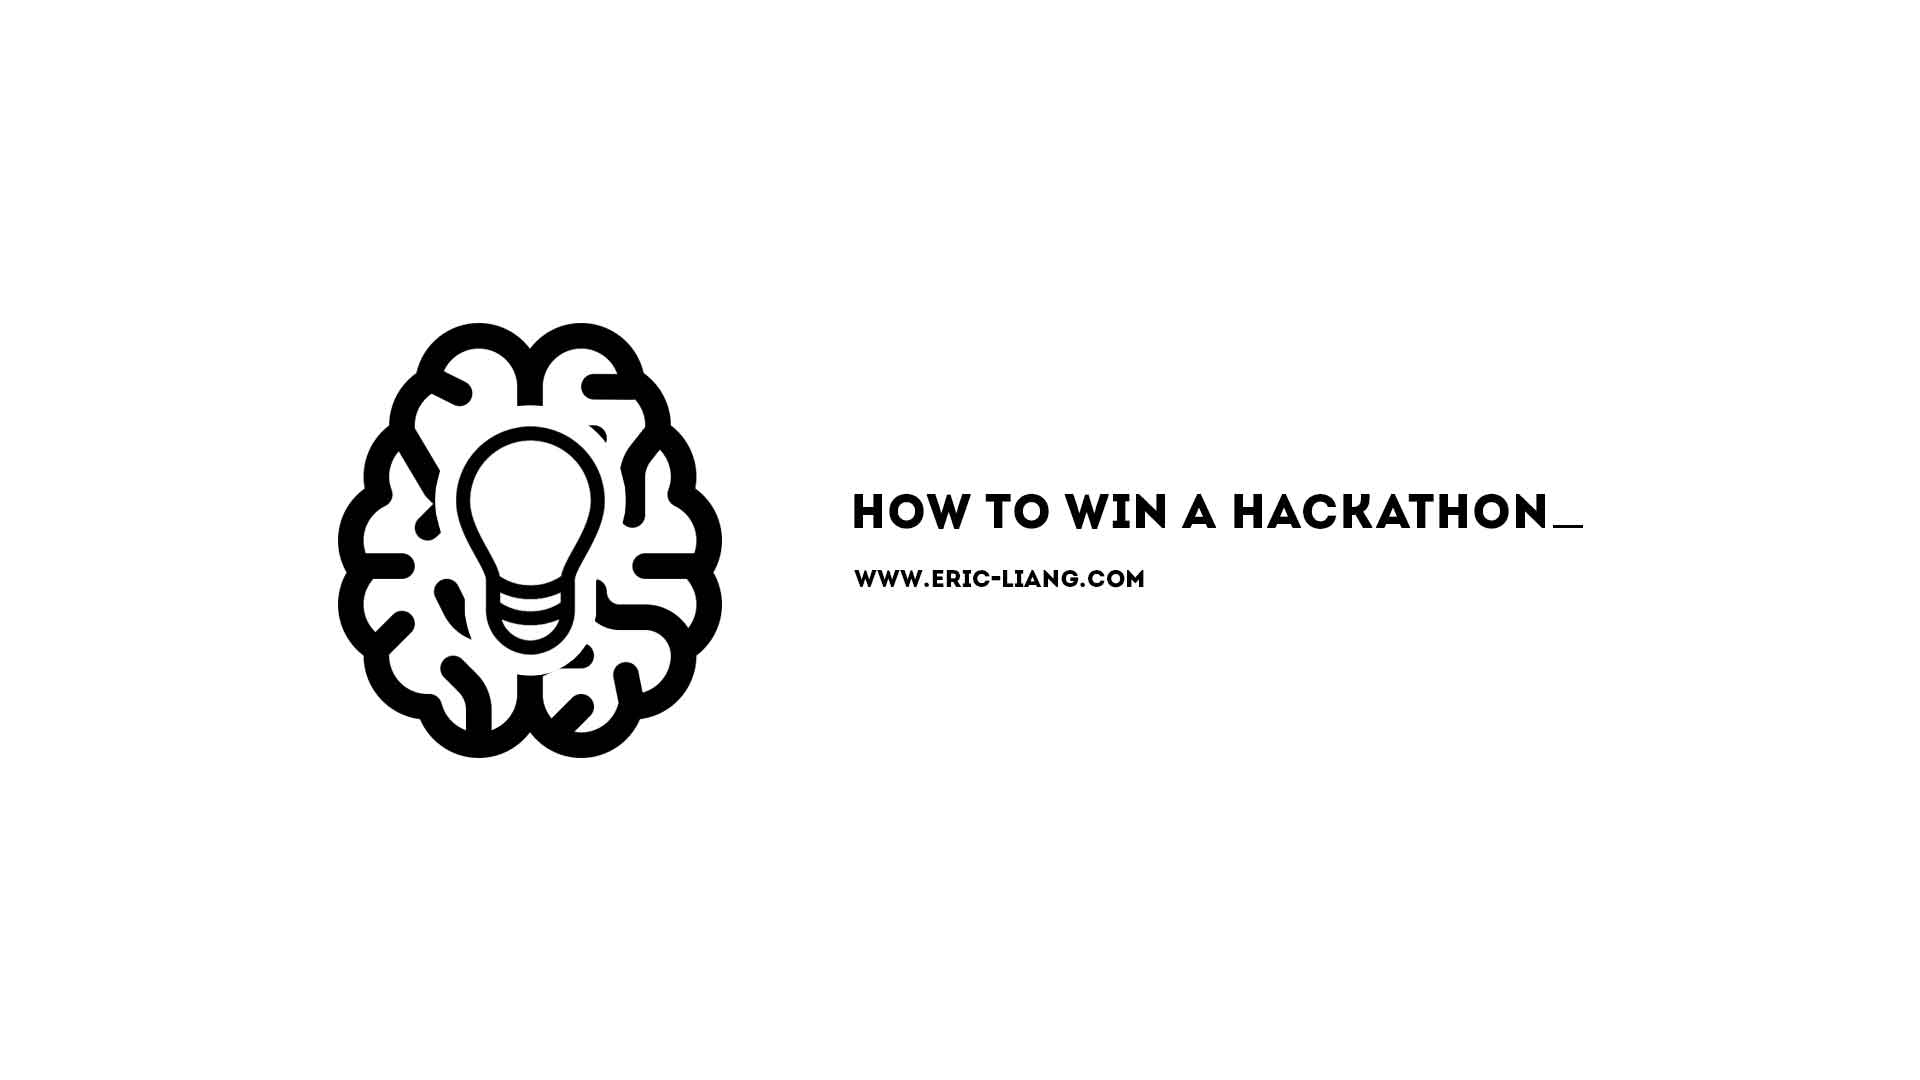 How to Win a Hackathon